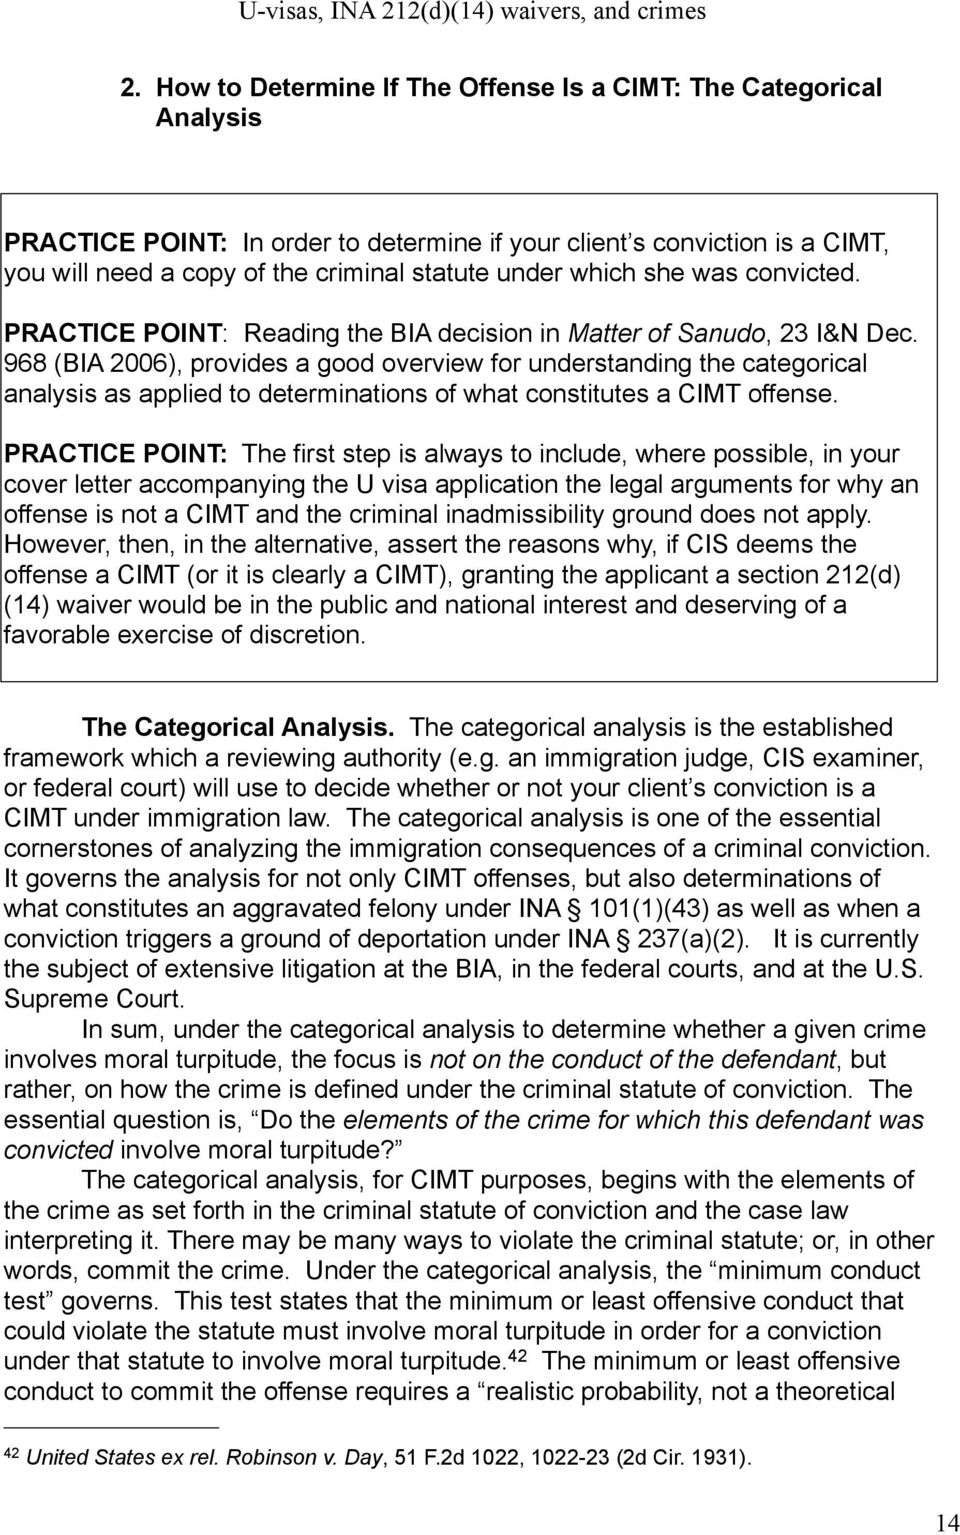 968 (BIA 2006), provides a good overview for understanding the categorical analysis as applied to determinations of what constitutes a CIMT offense.